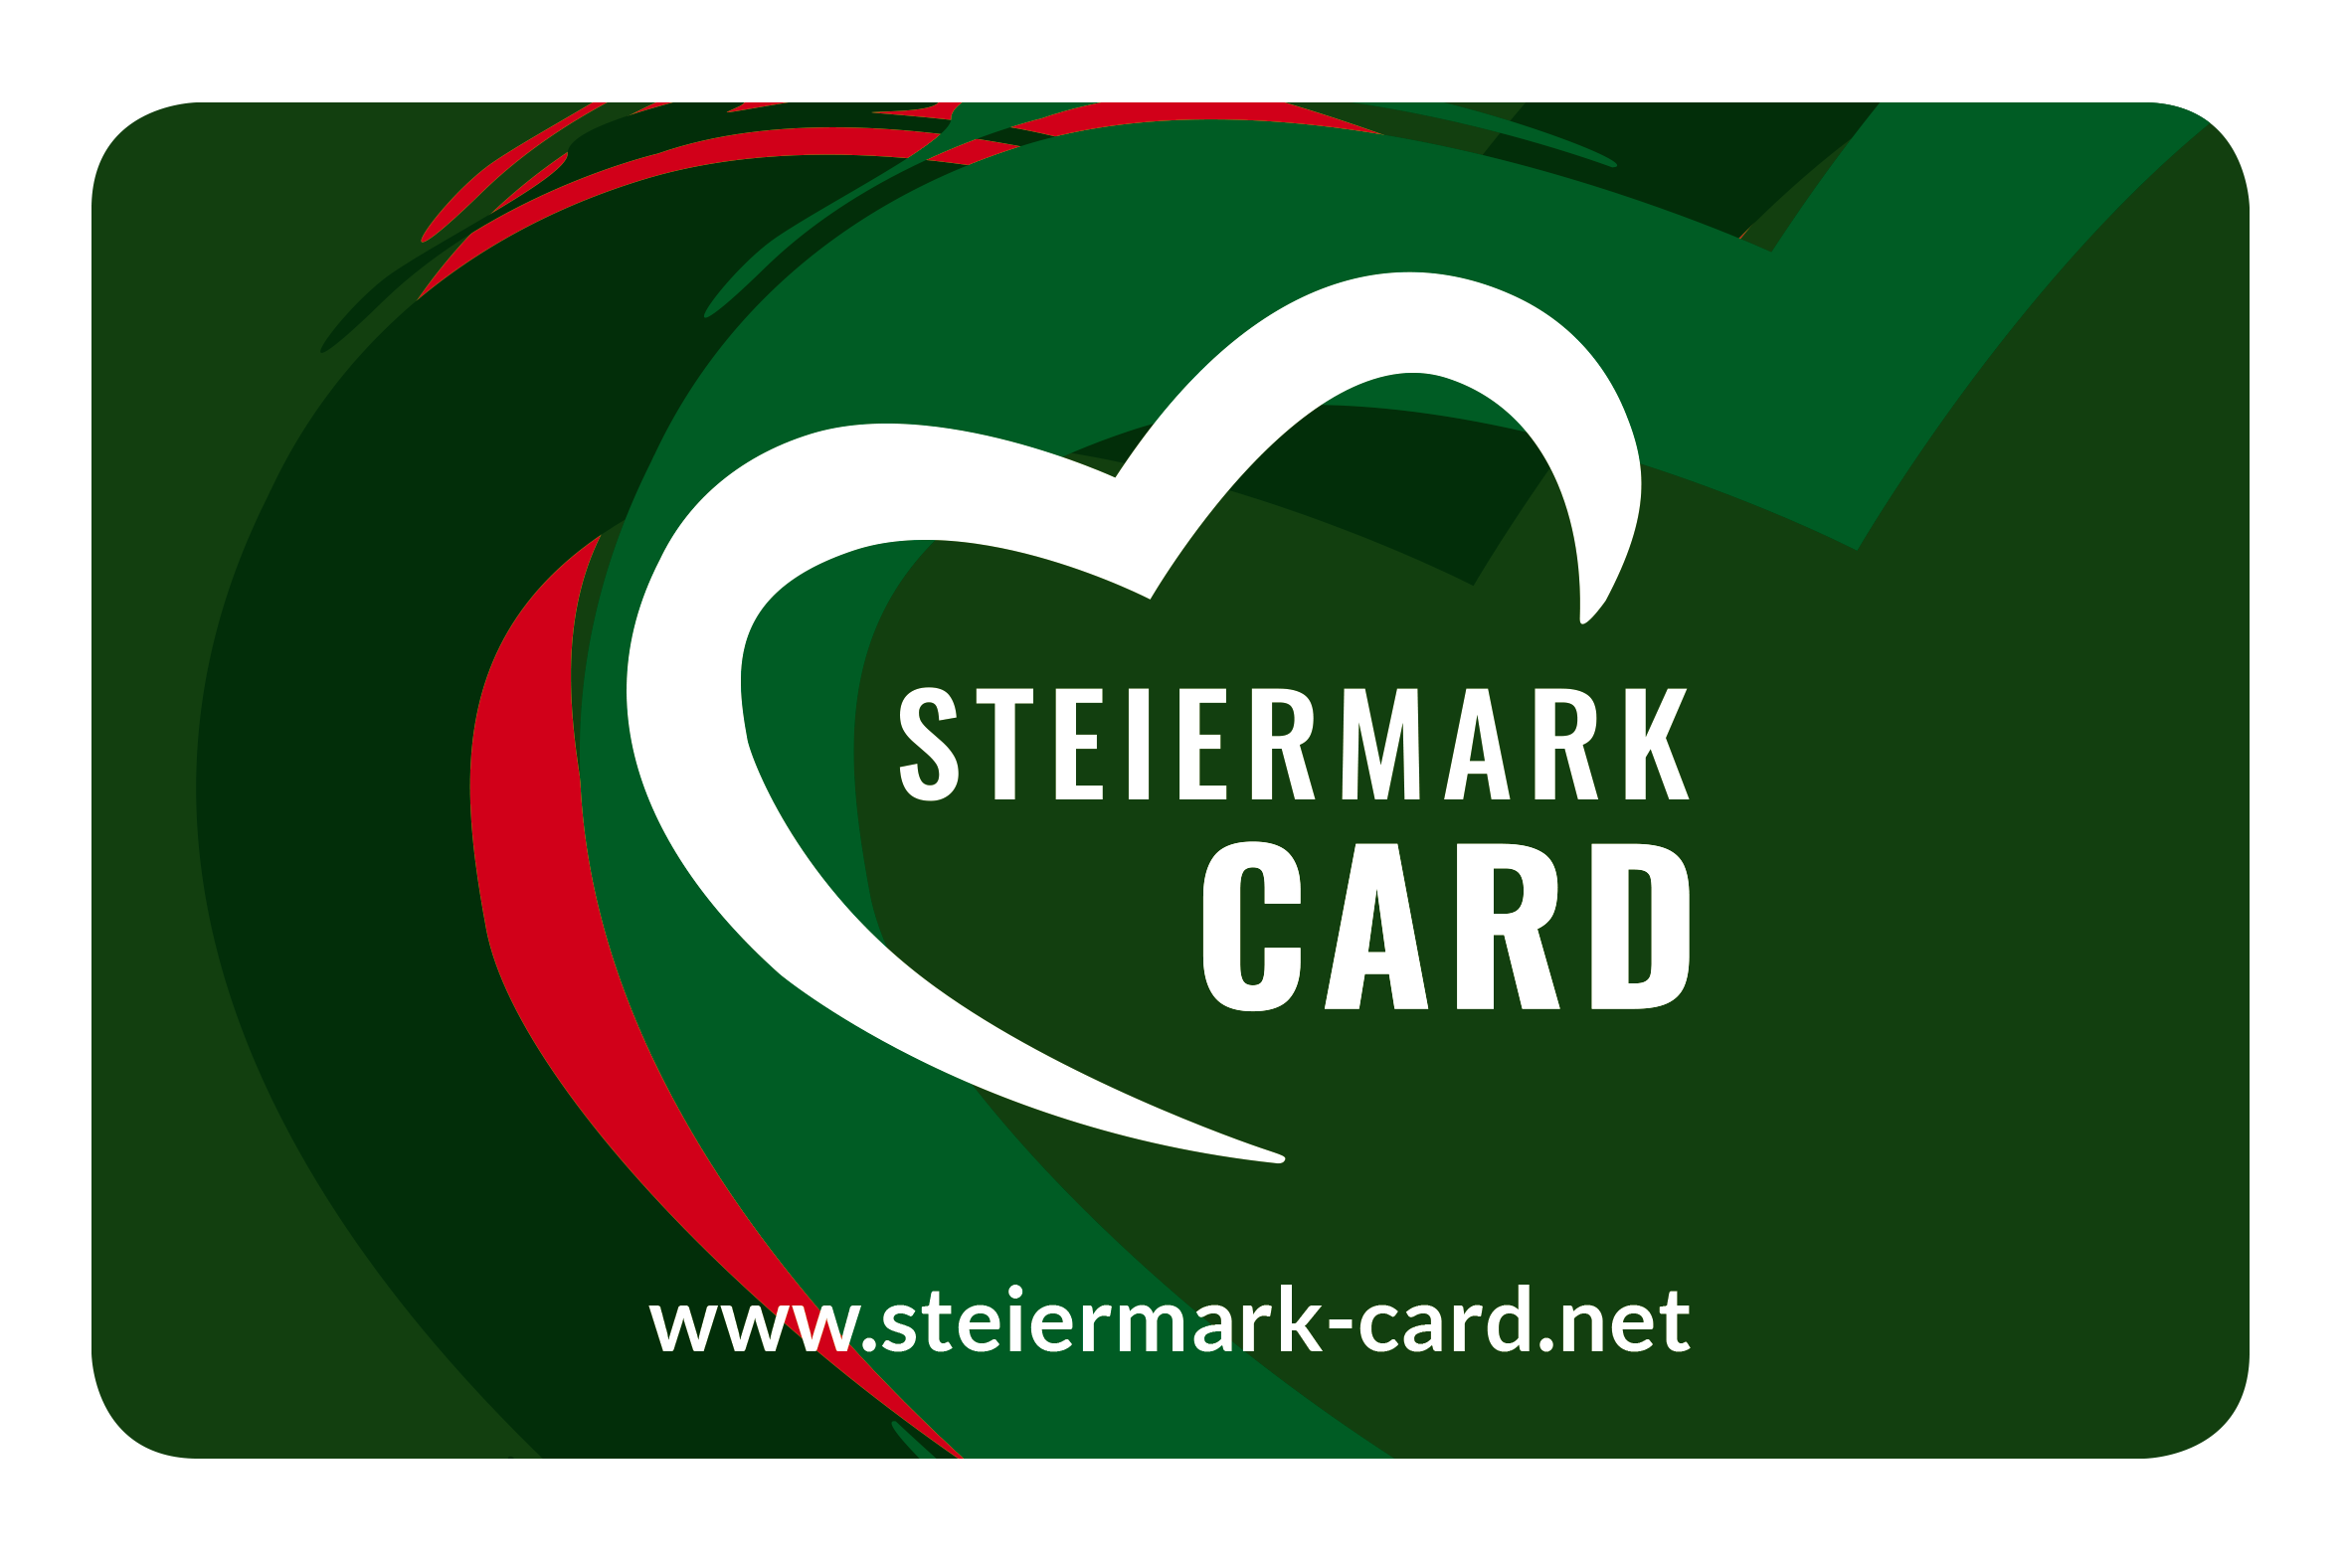 steiermark card karte normal